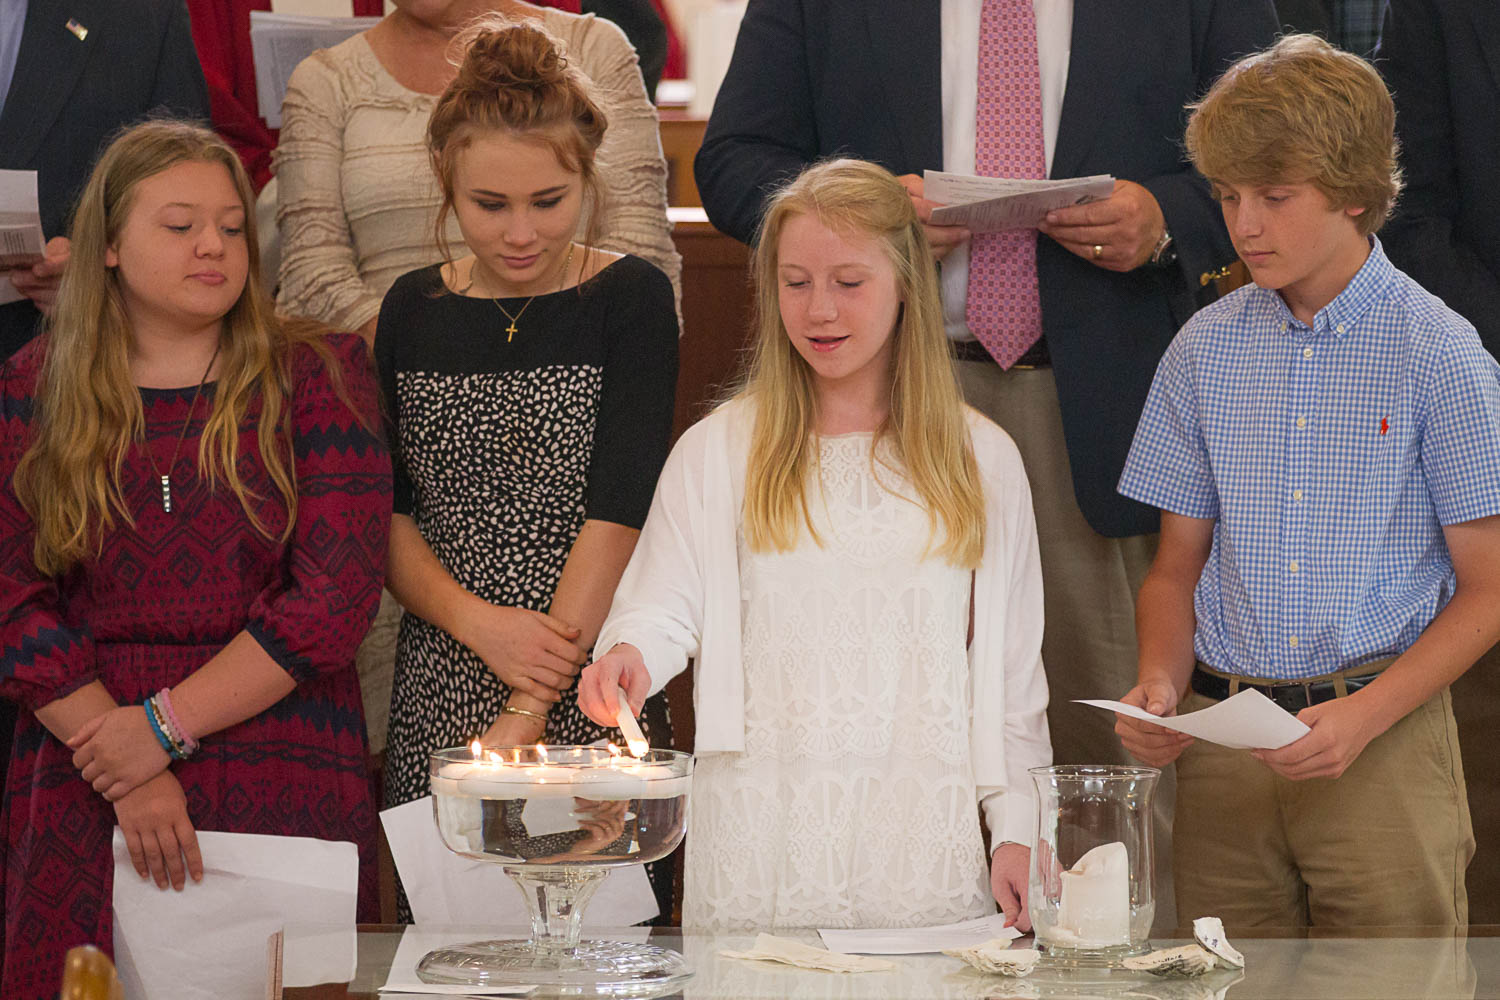 Confirmation Sunday lighting candles